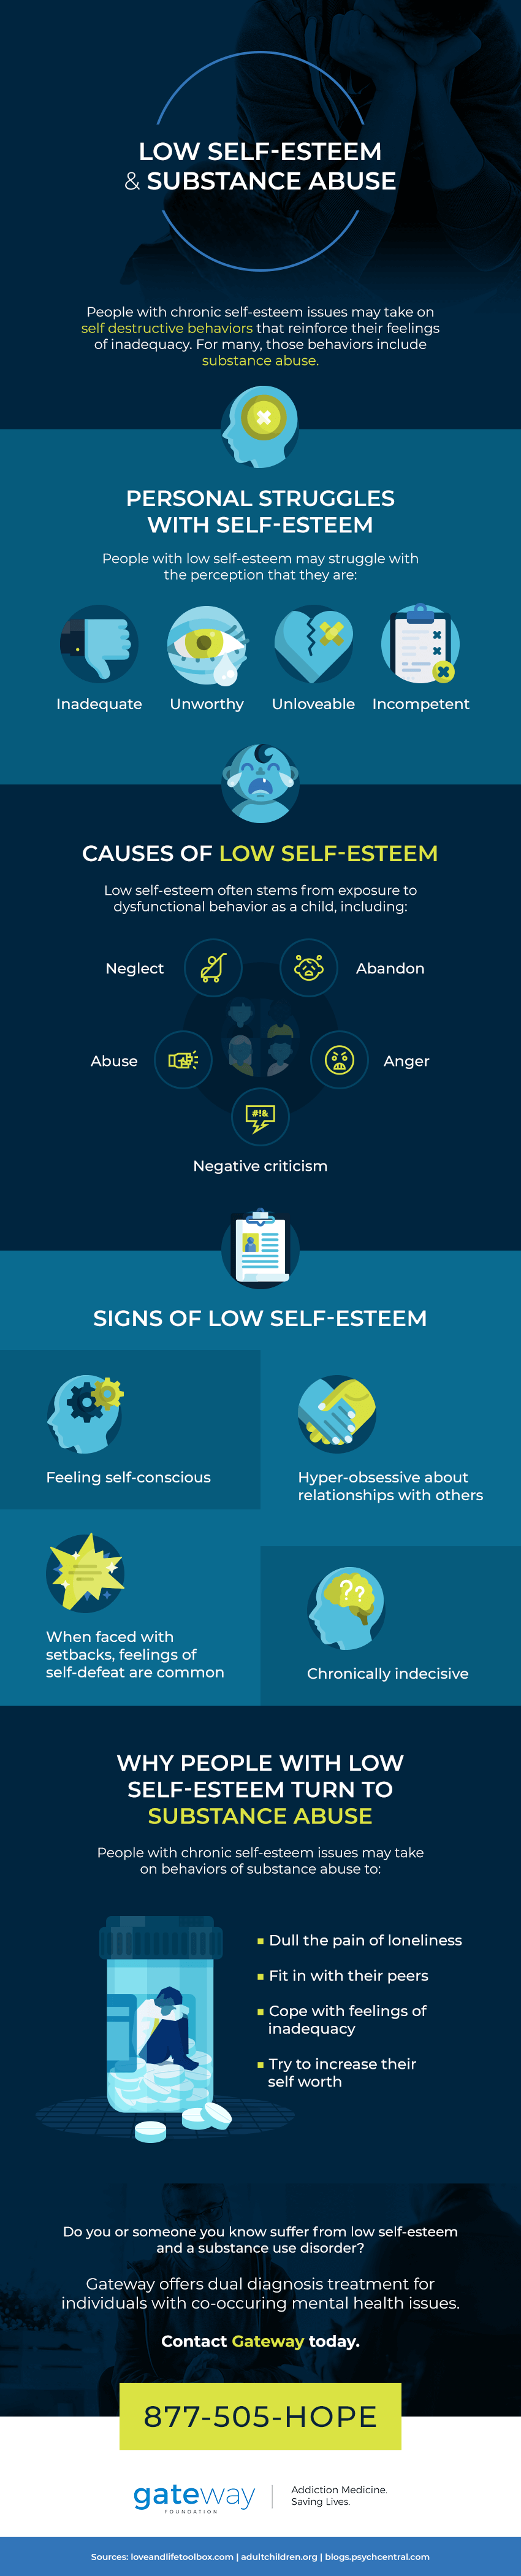 can low self esteem lead to substance abuse?